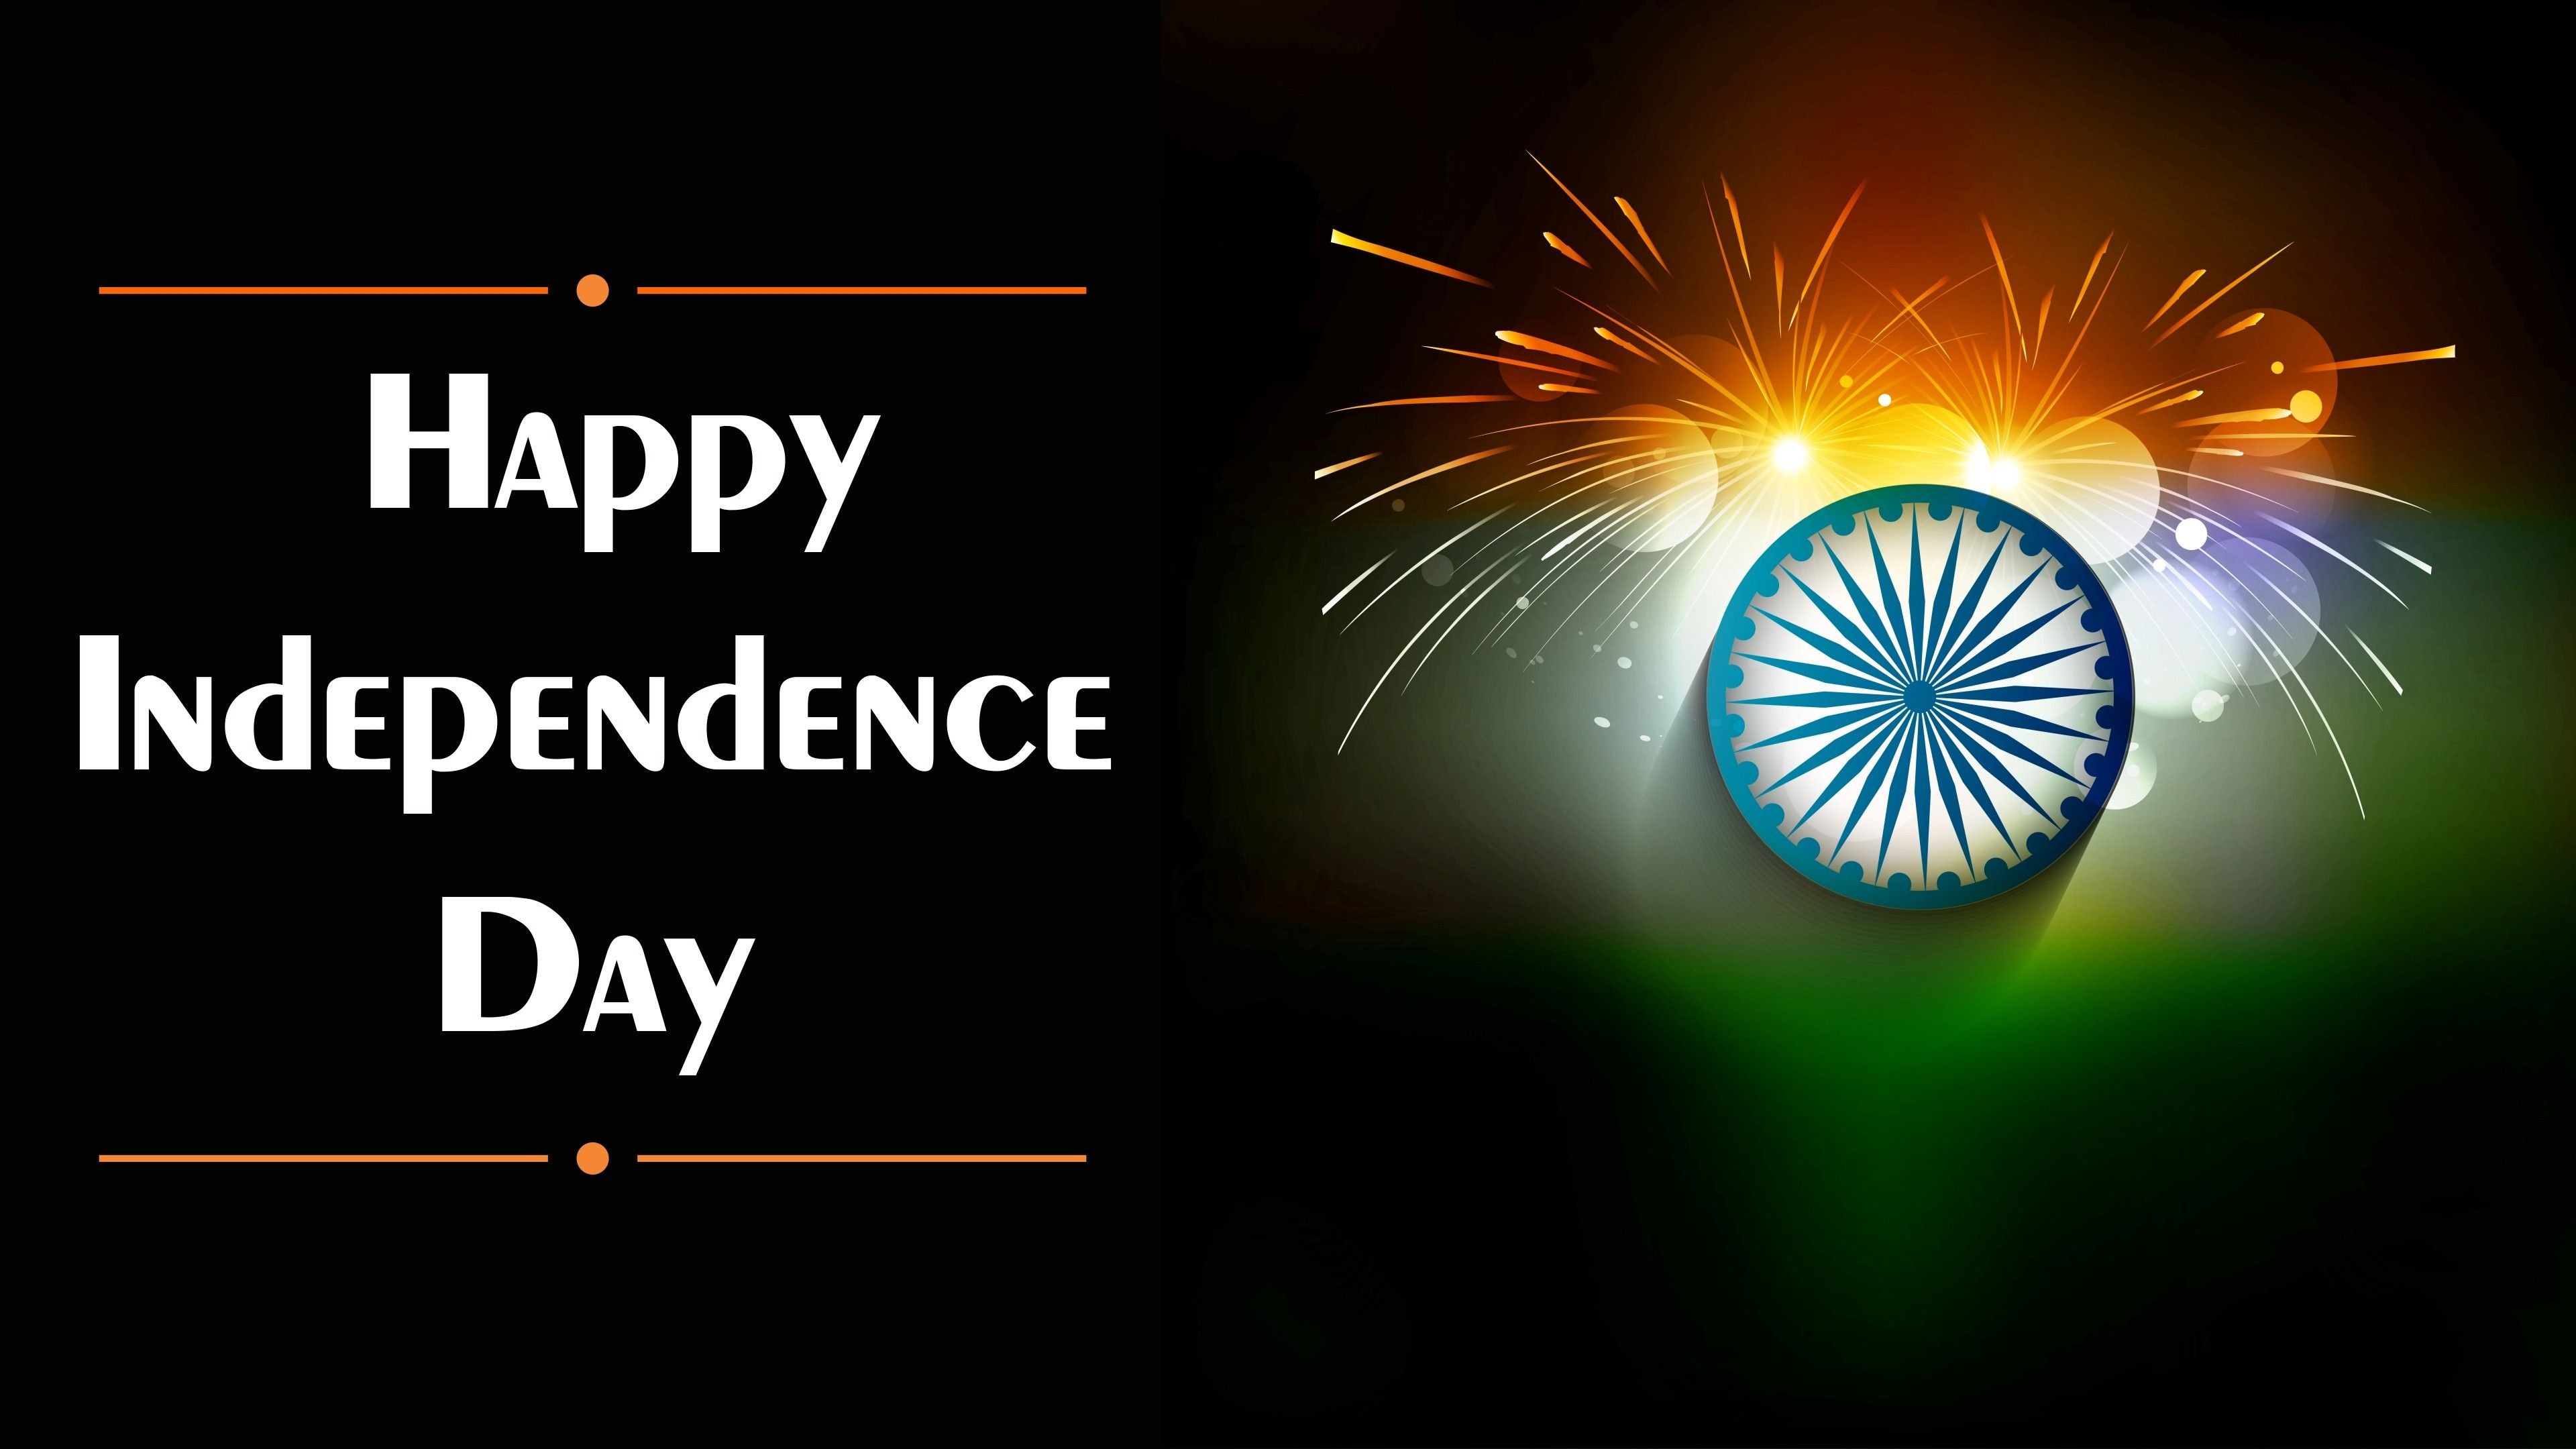 3840x2160 Happy Independence Day of India HD Desktop Wallpaper Background | HD ...